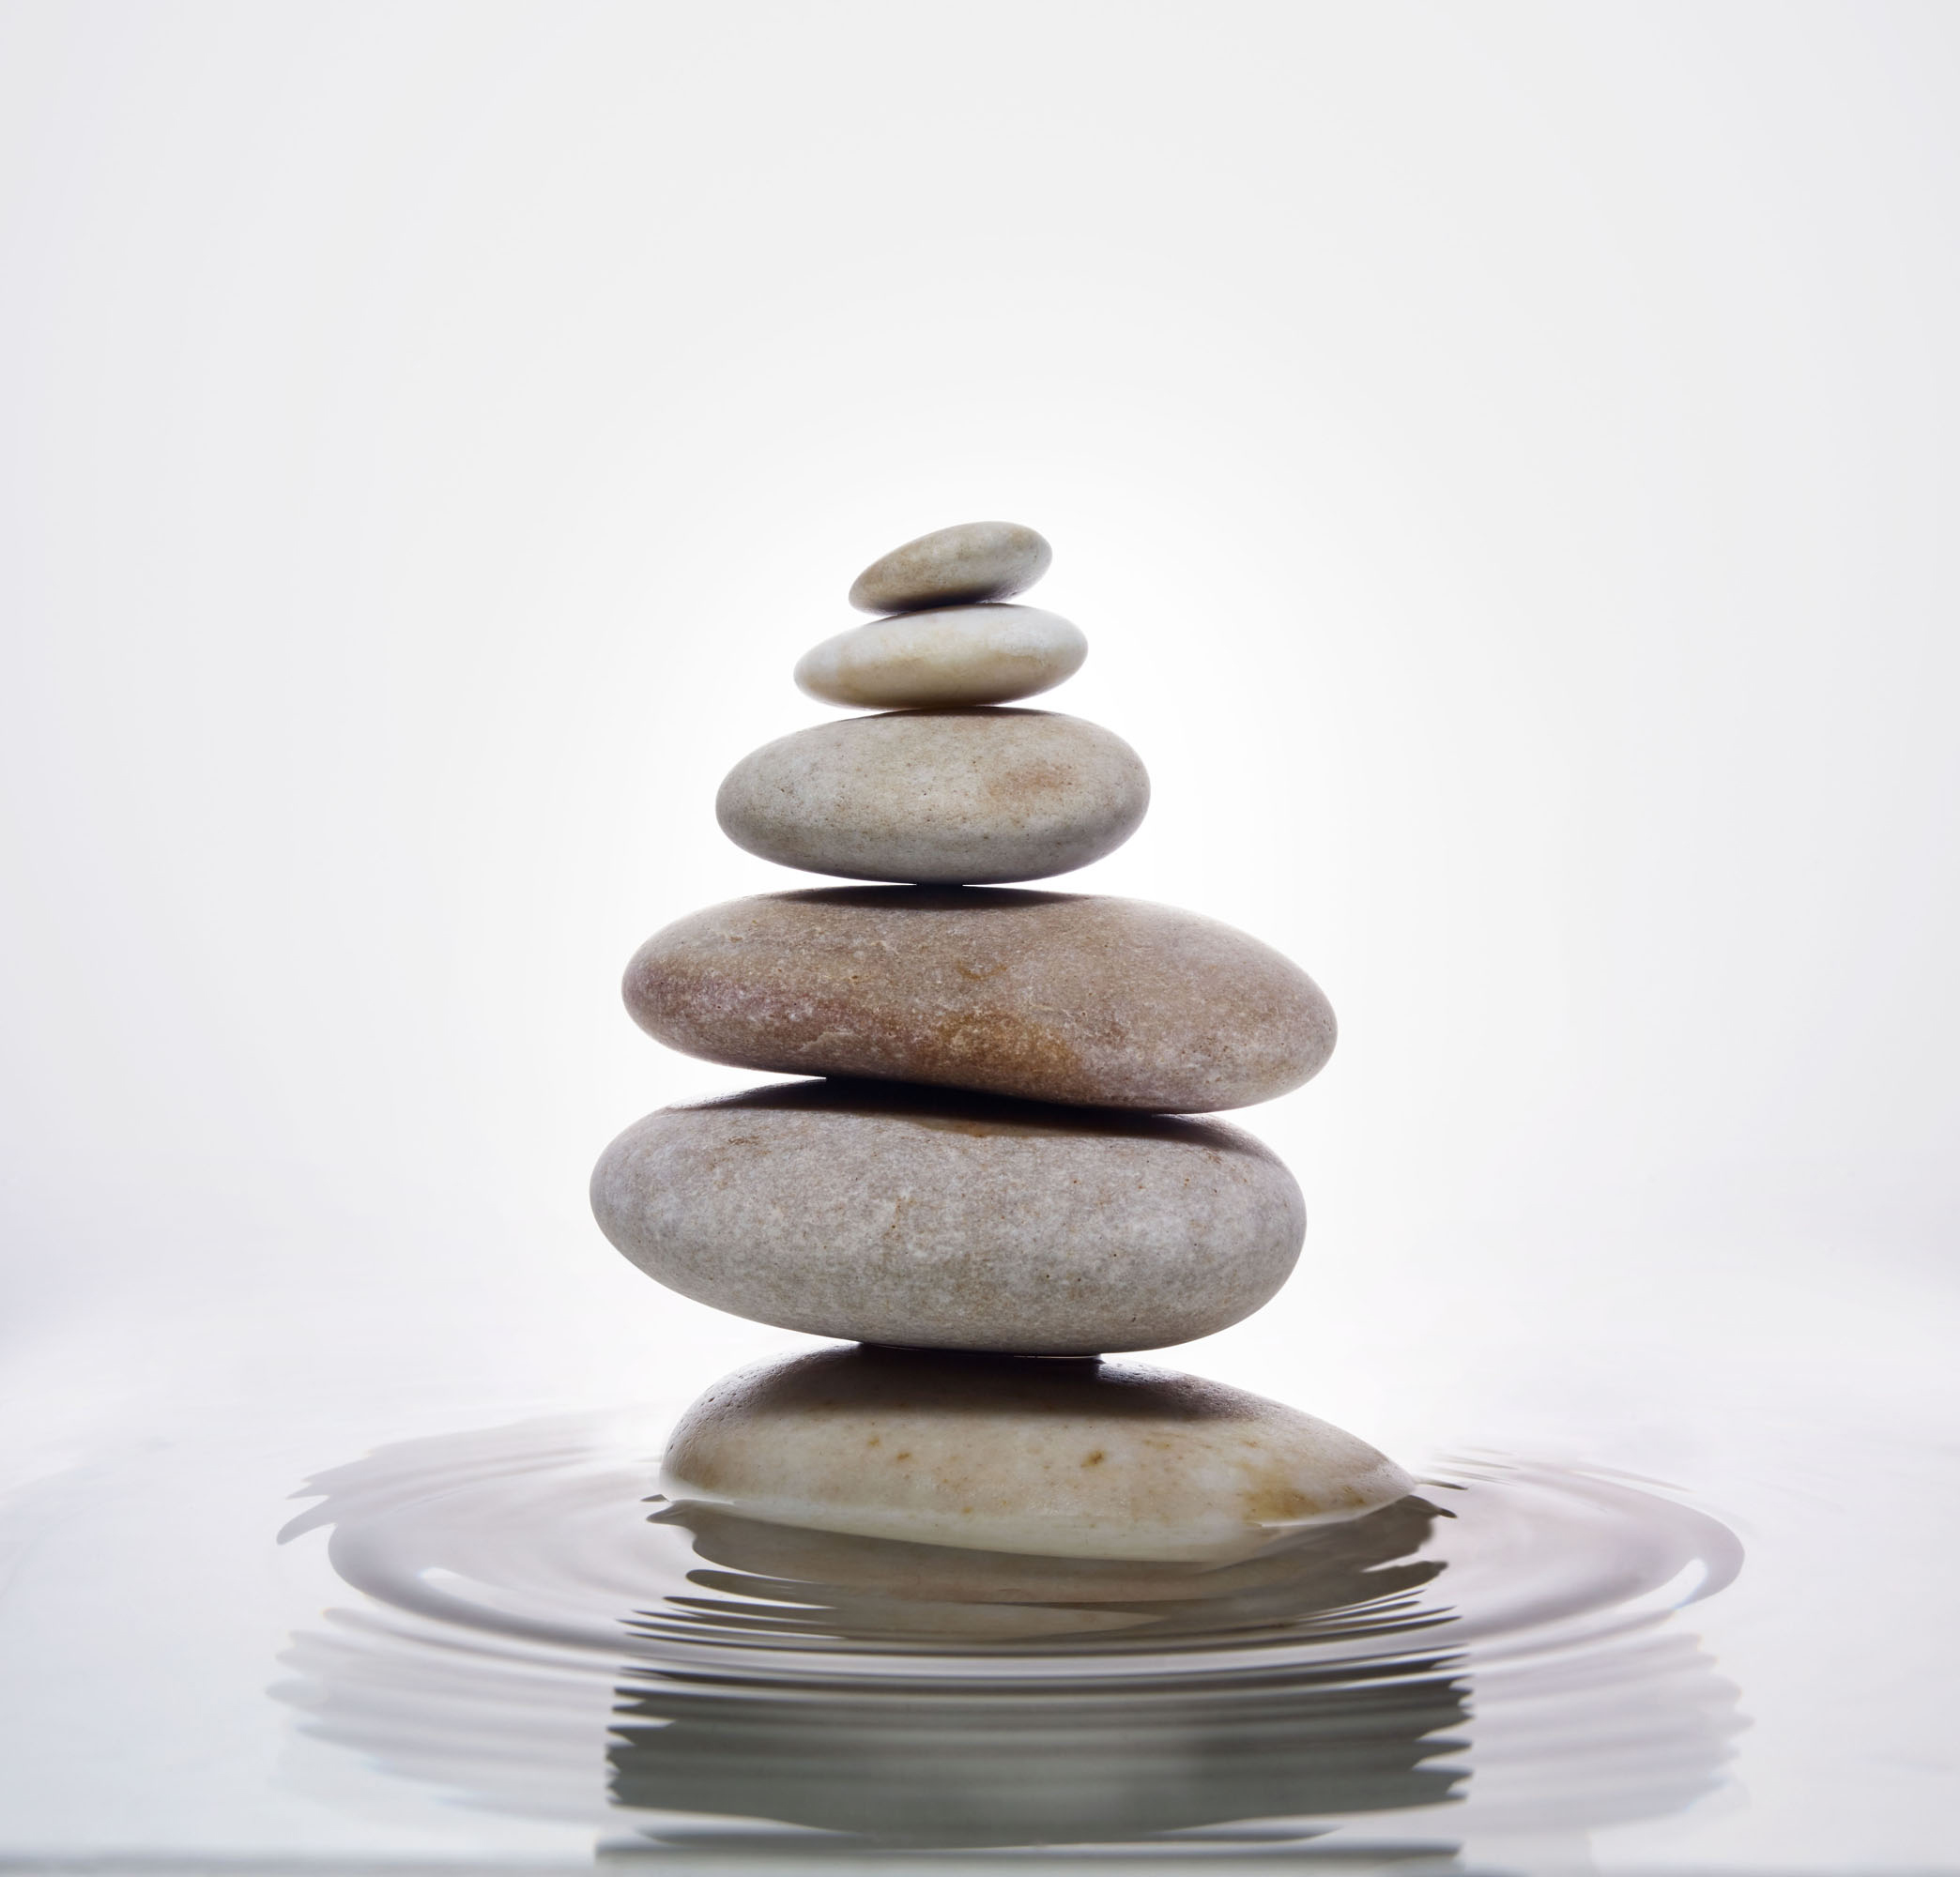 stack of stones in water with ripples